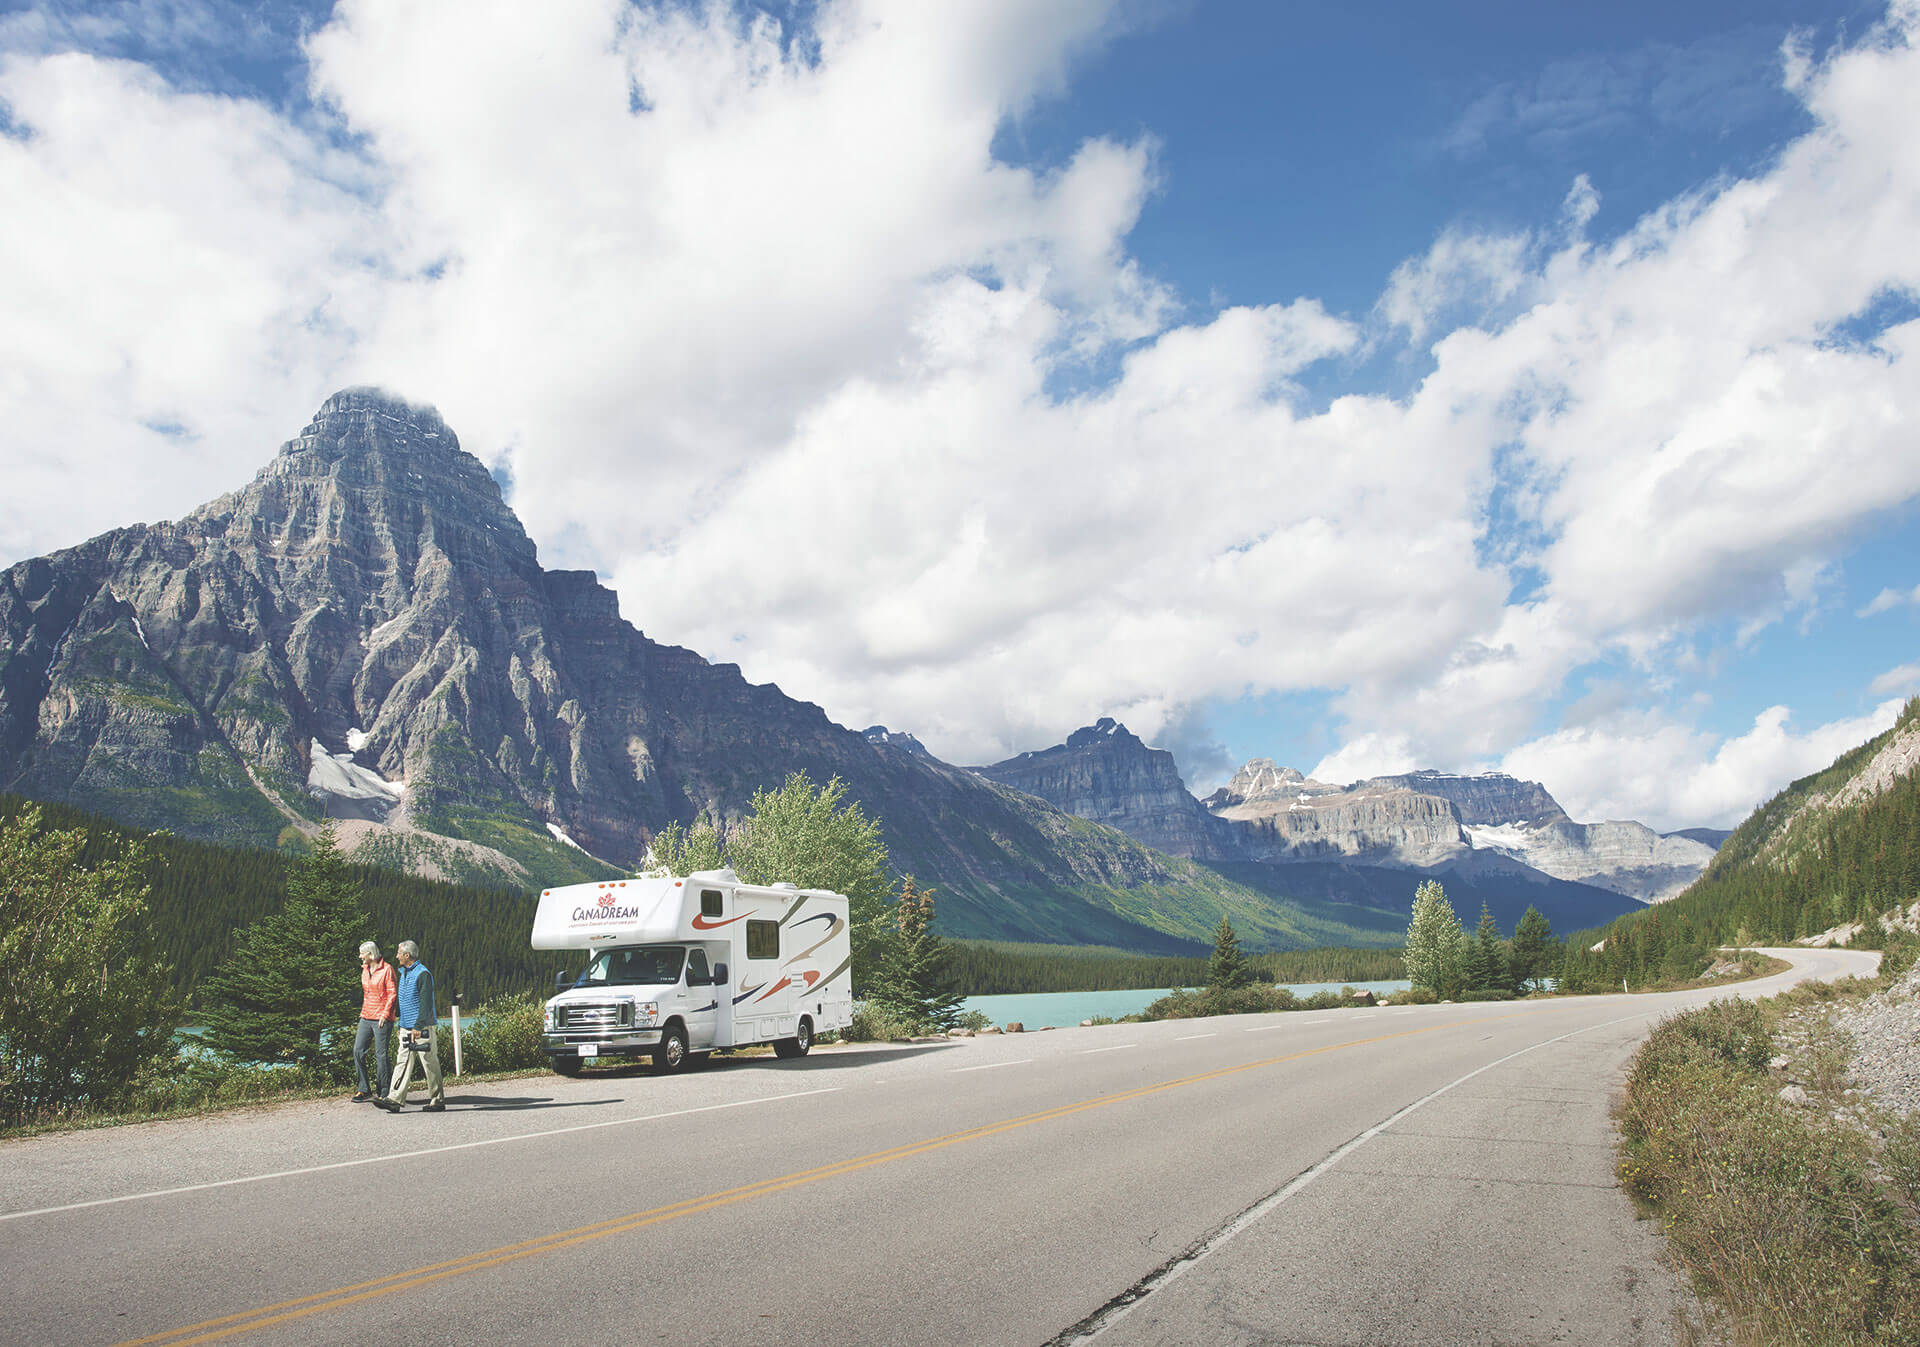 RVing in the mountains